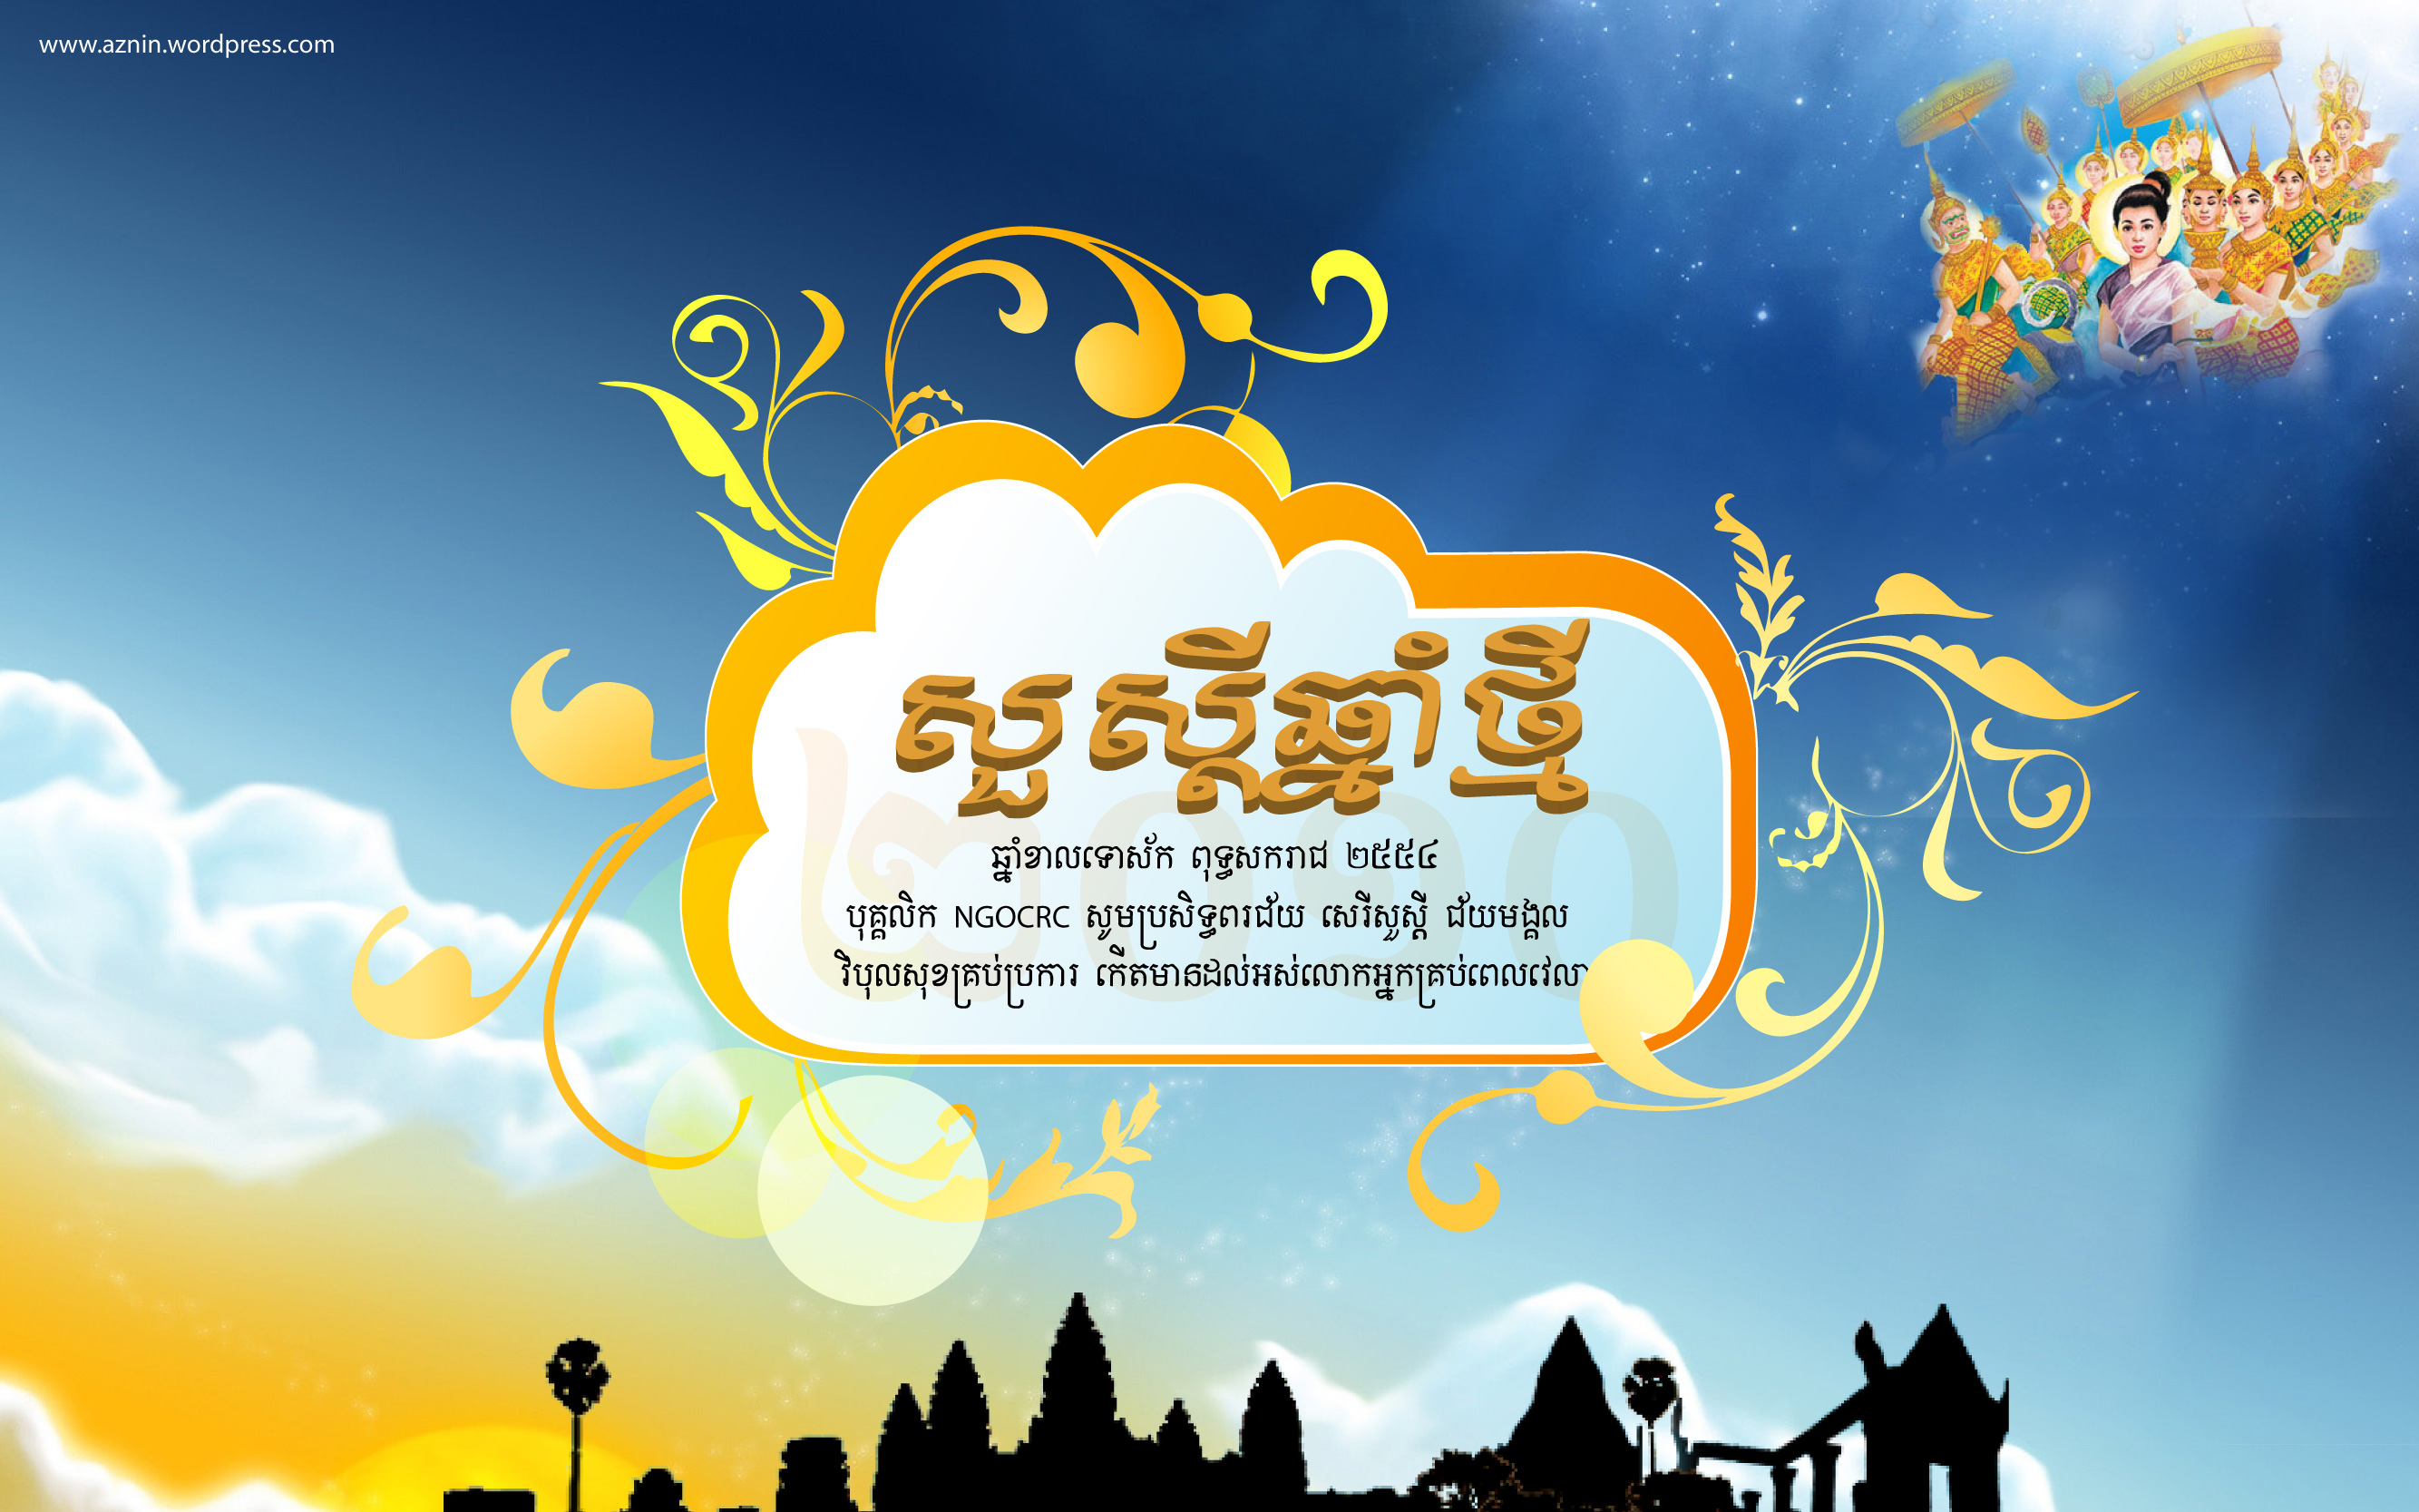 khmer new year Posts about khmer new year written by alison in asia.